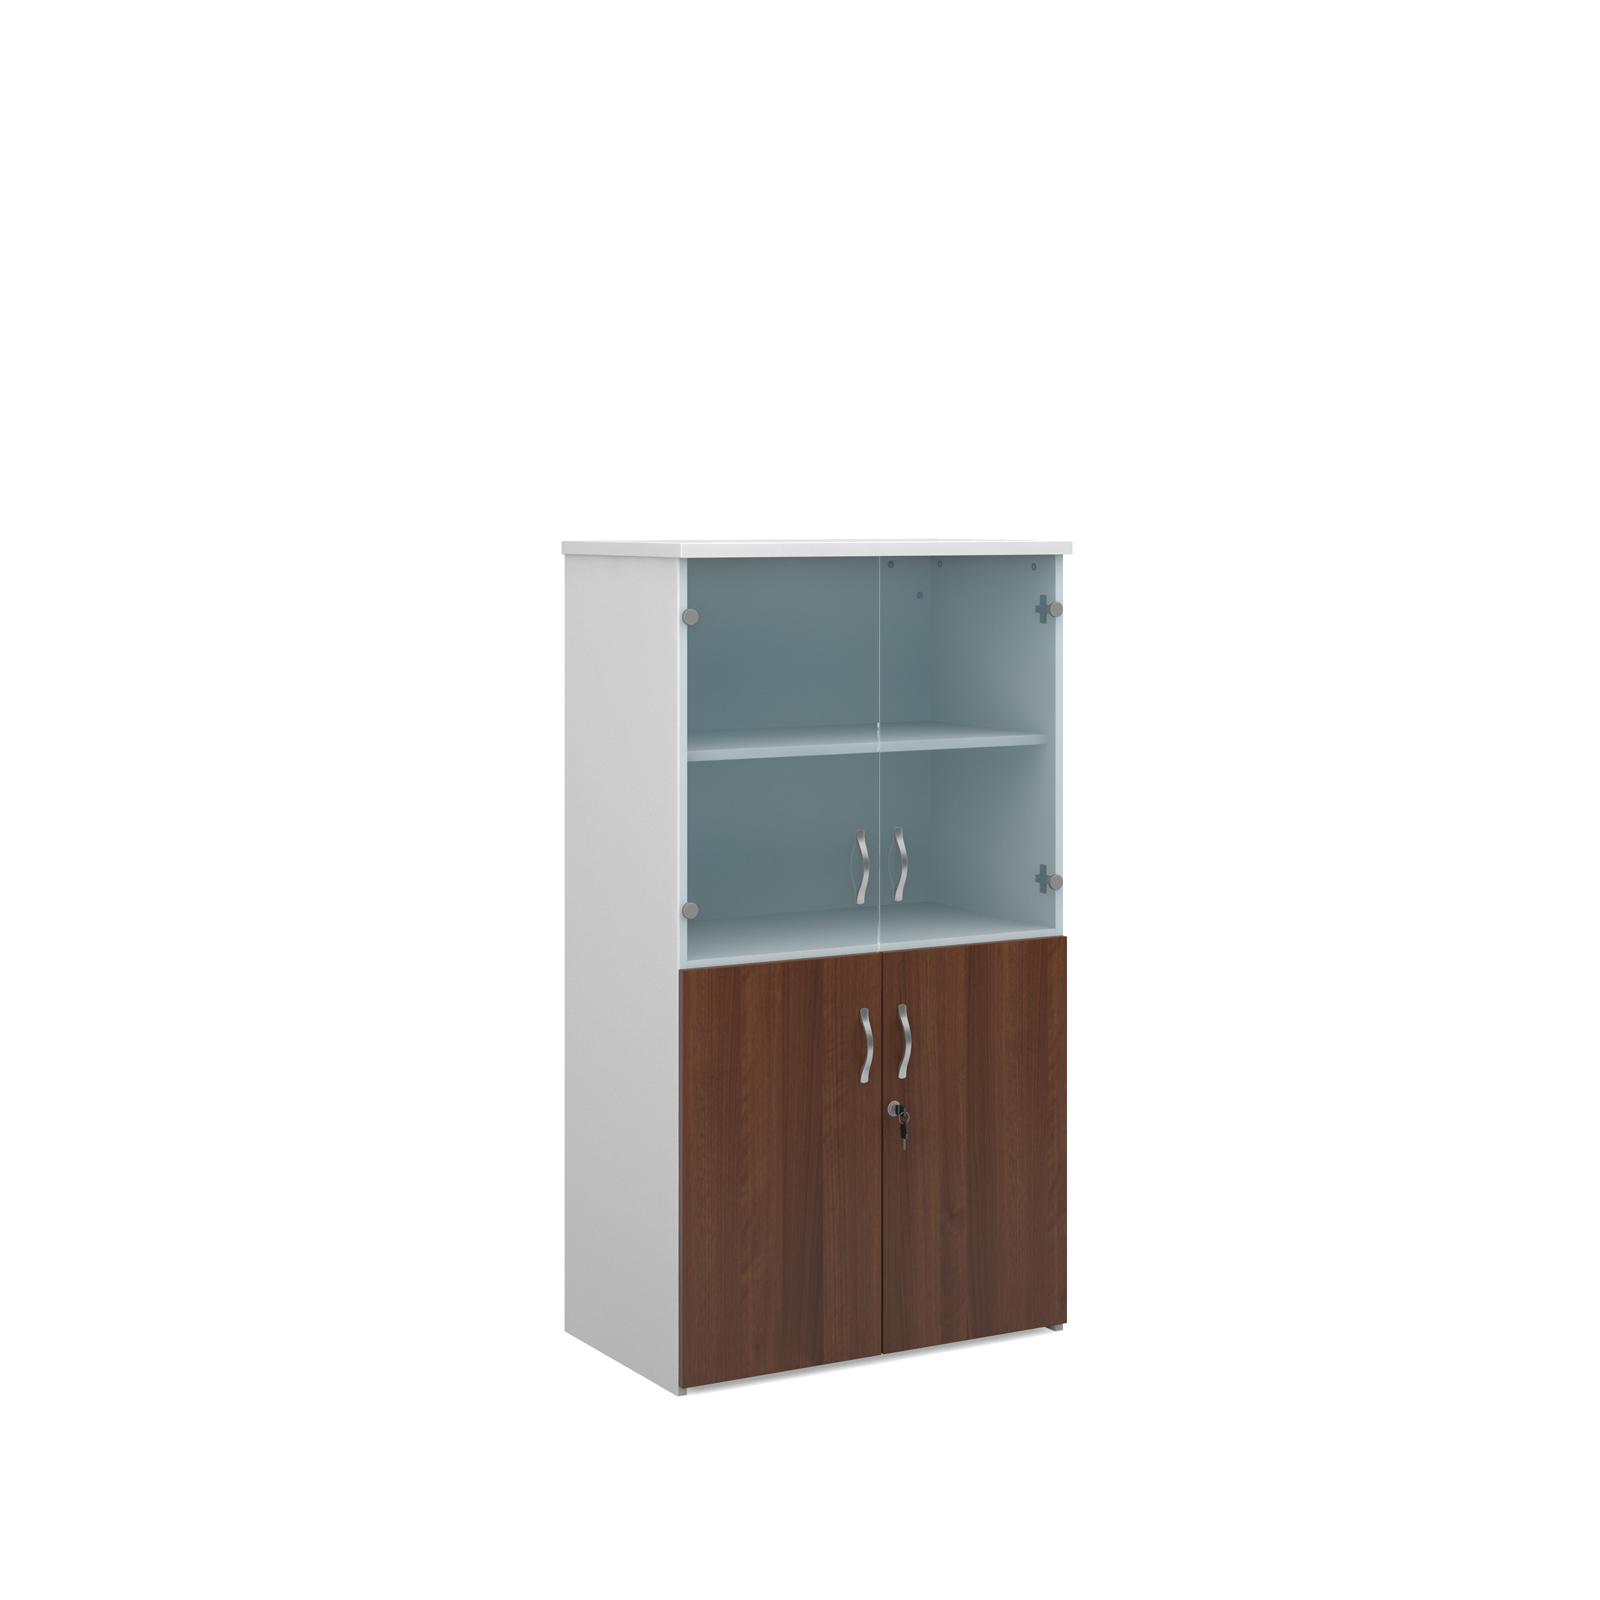 Universal Combination Unit With Glass Upper Doors 1440mm